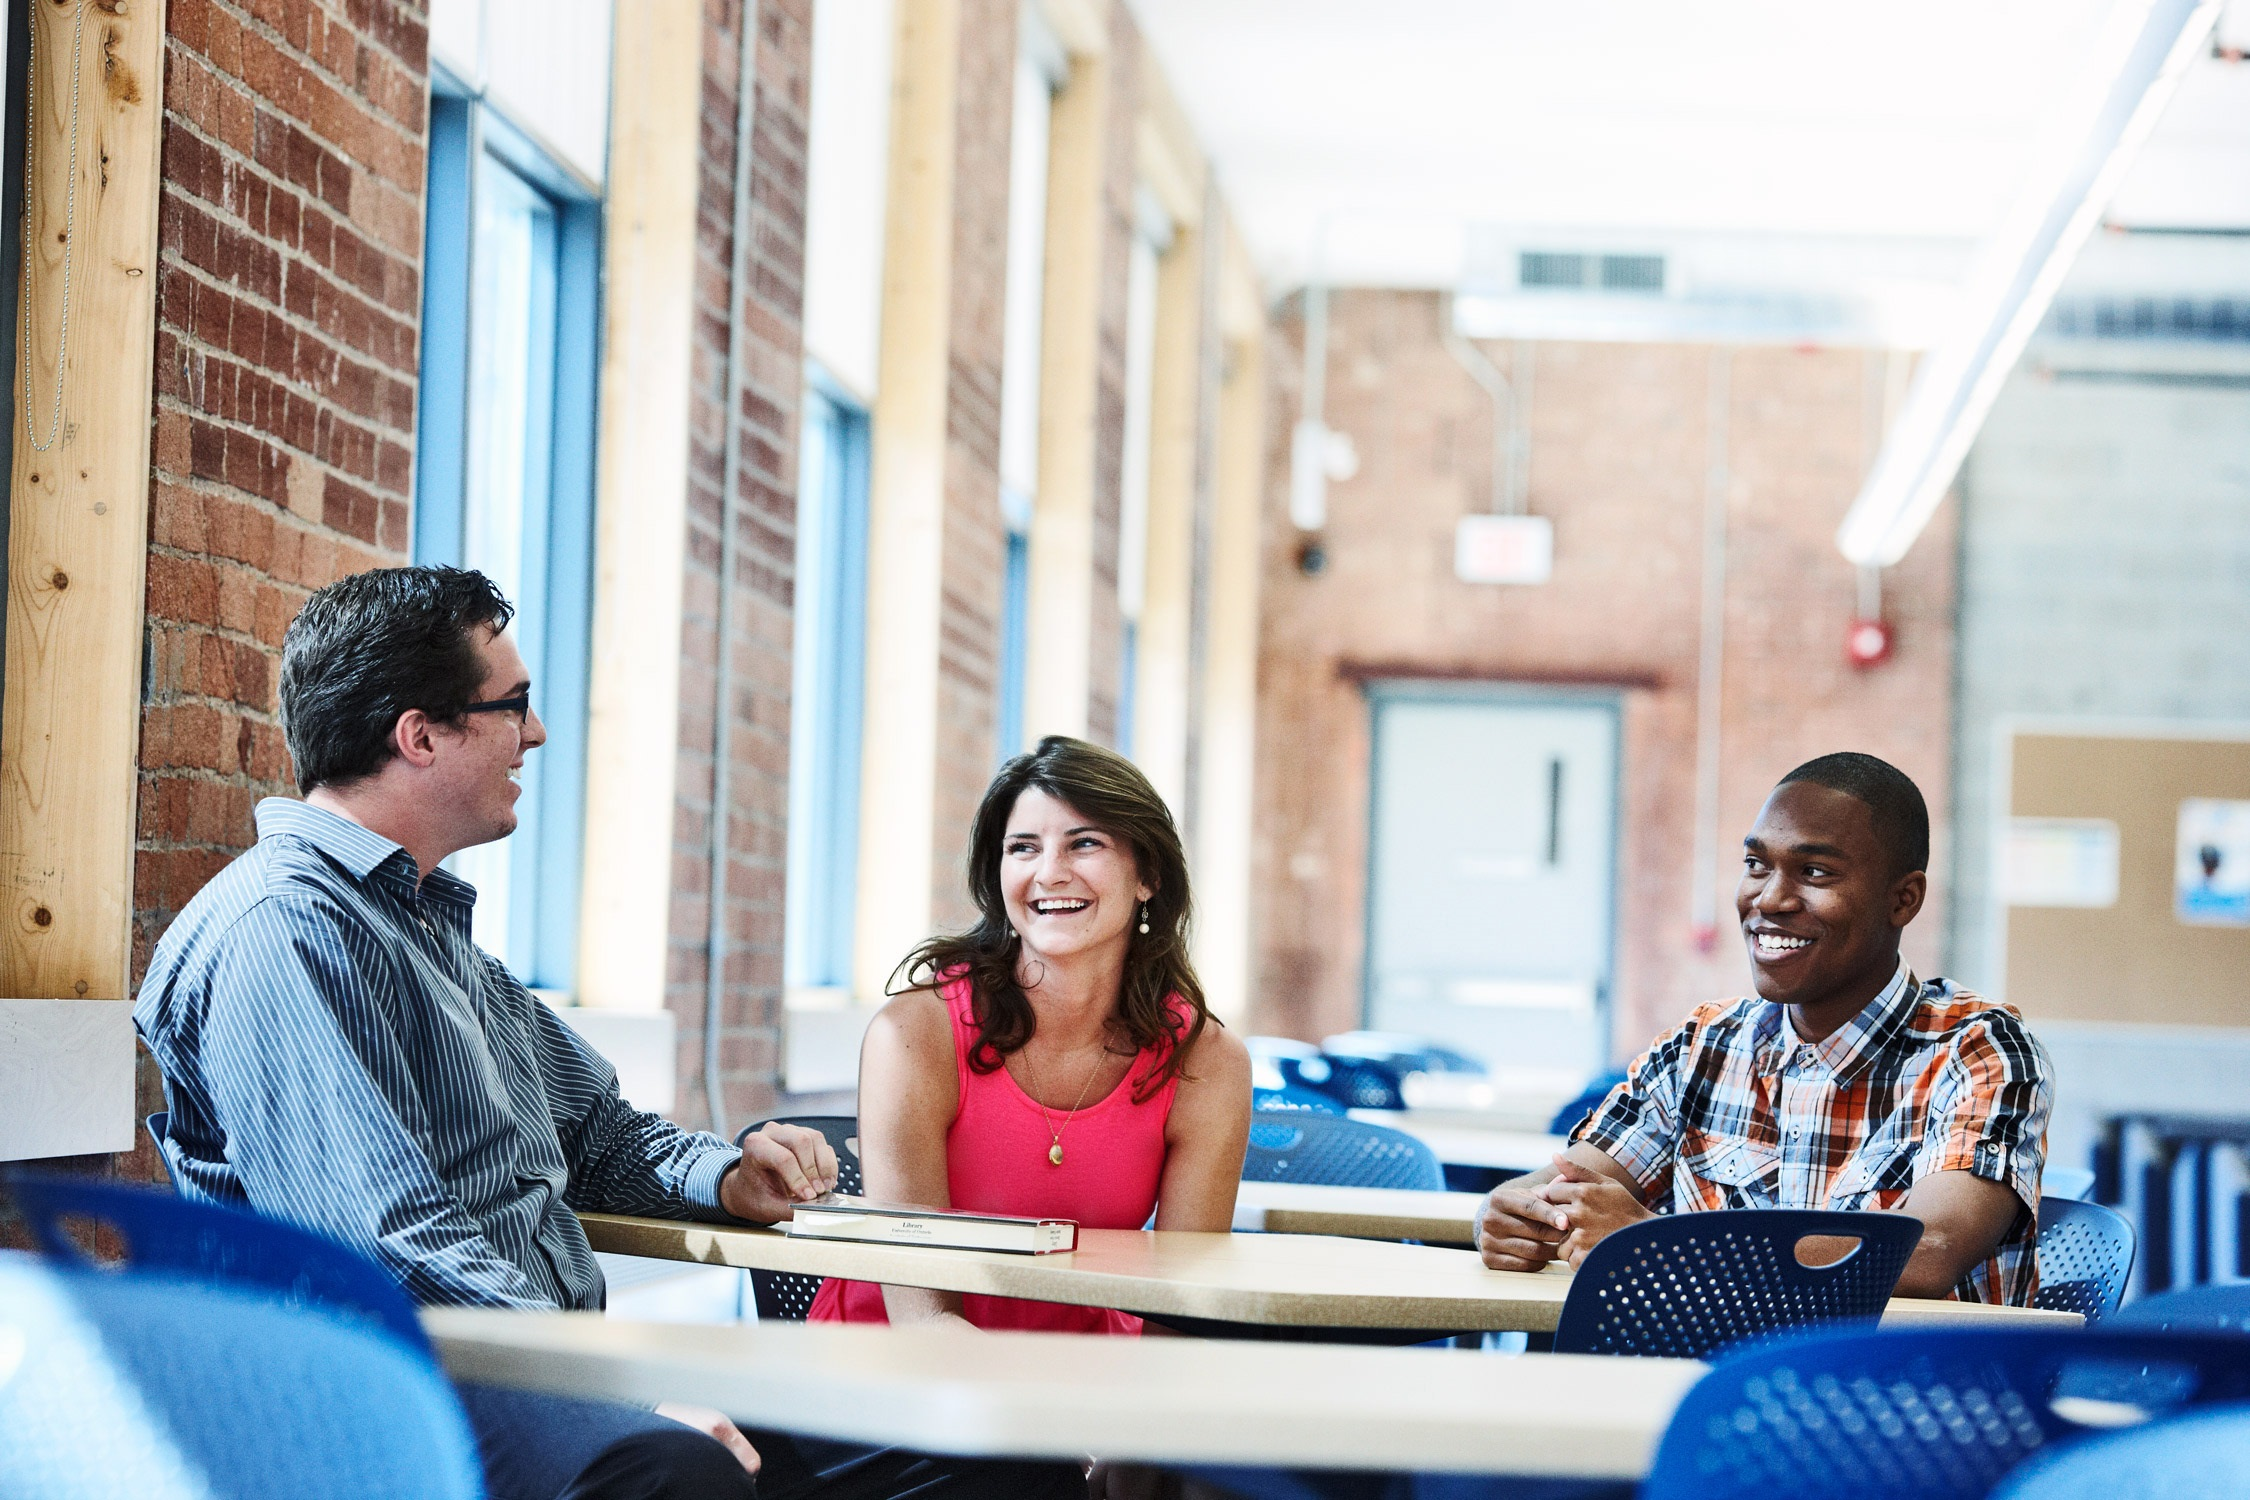 students conversing around a table